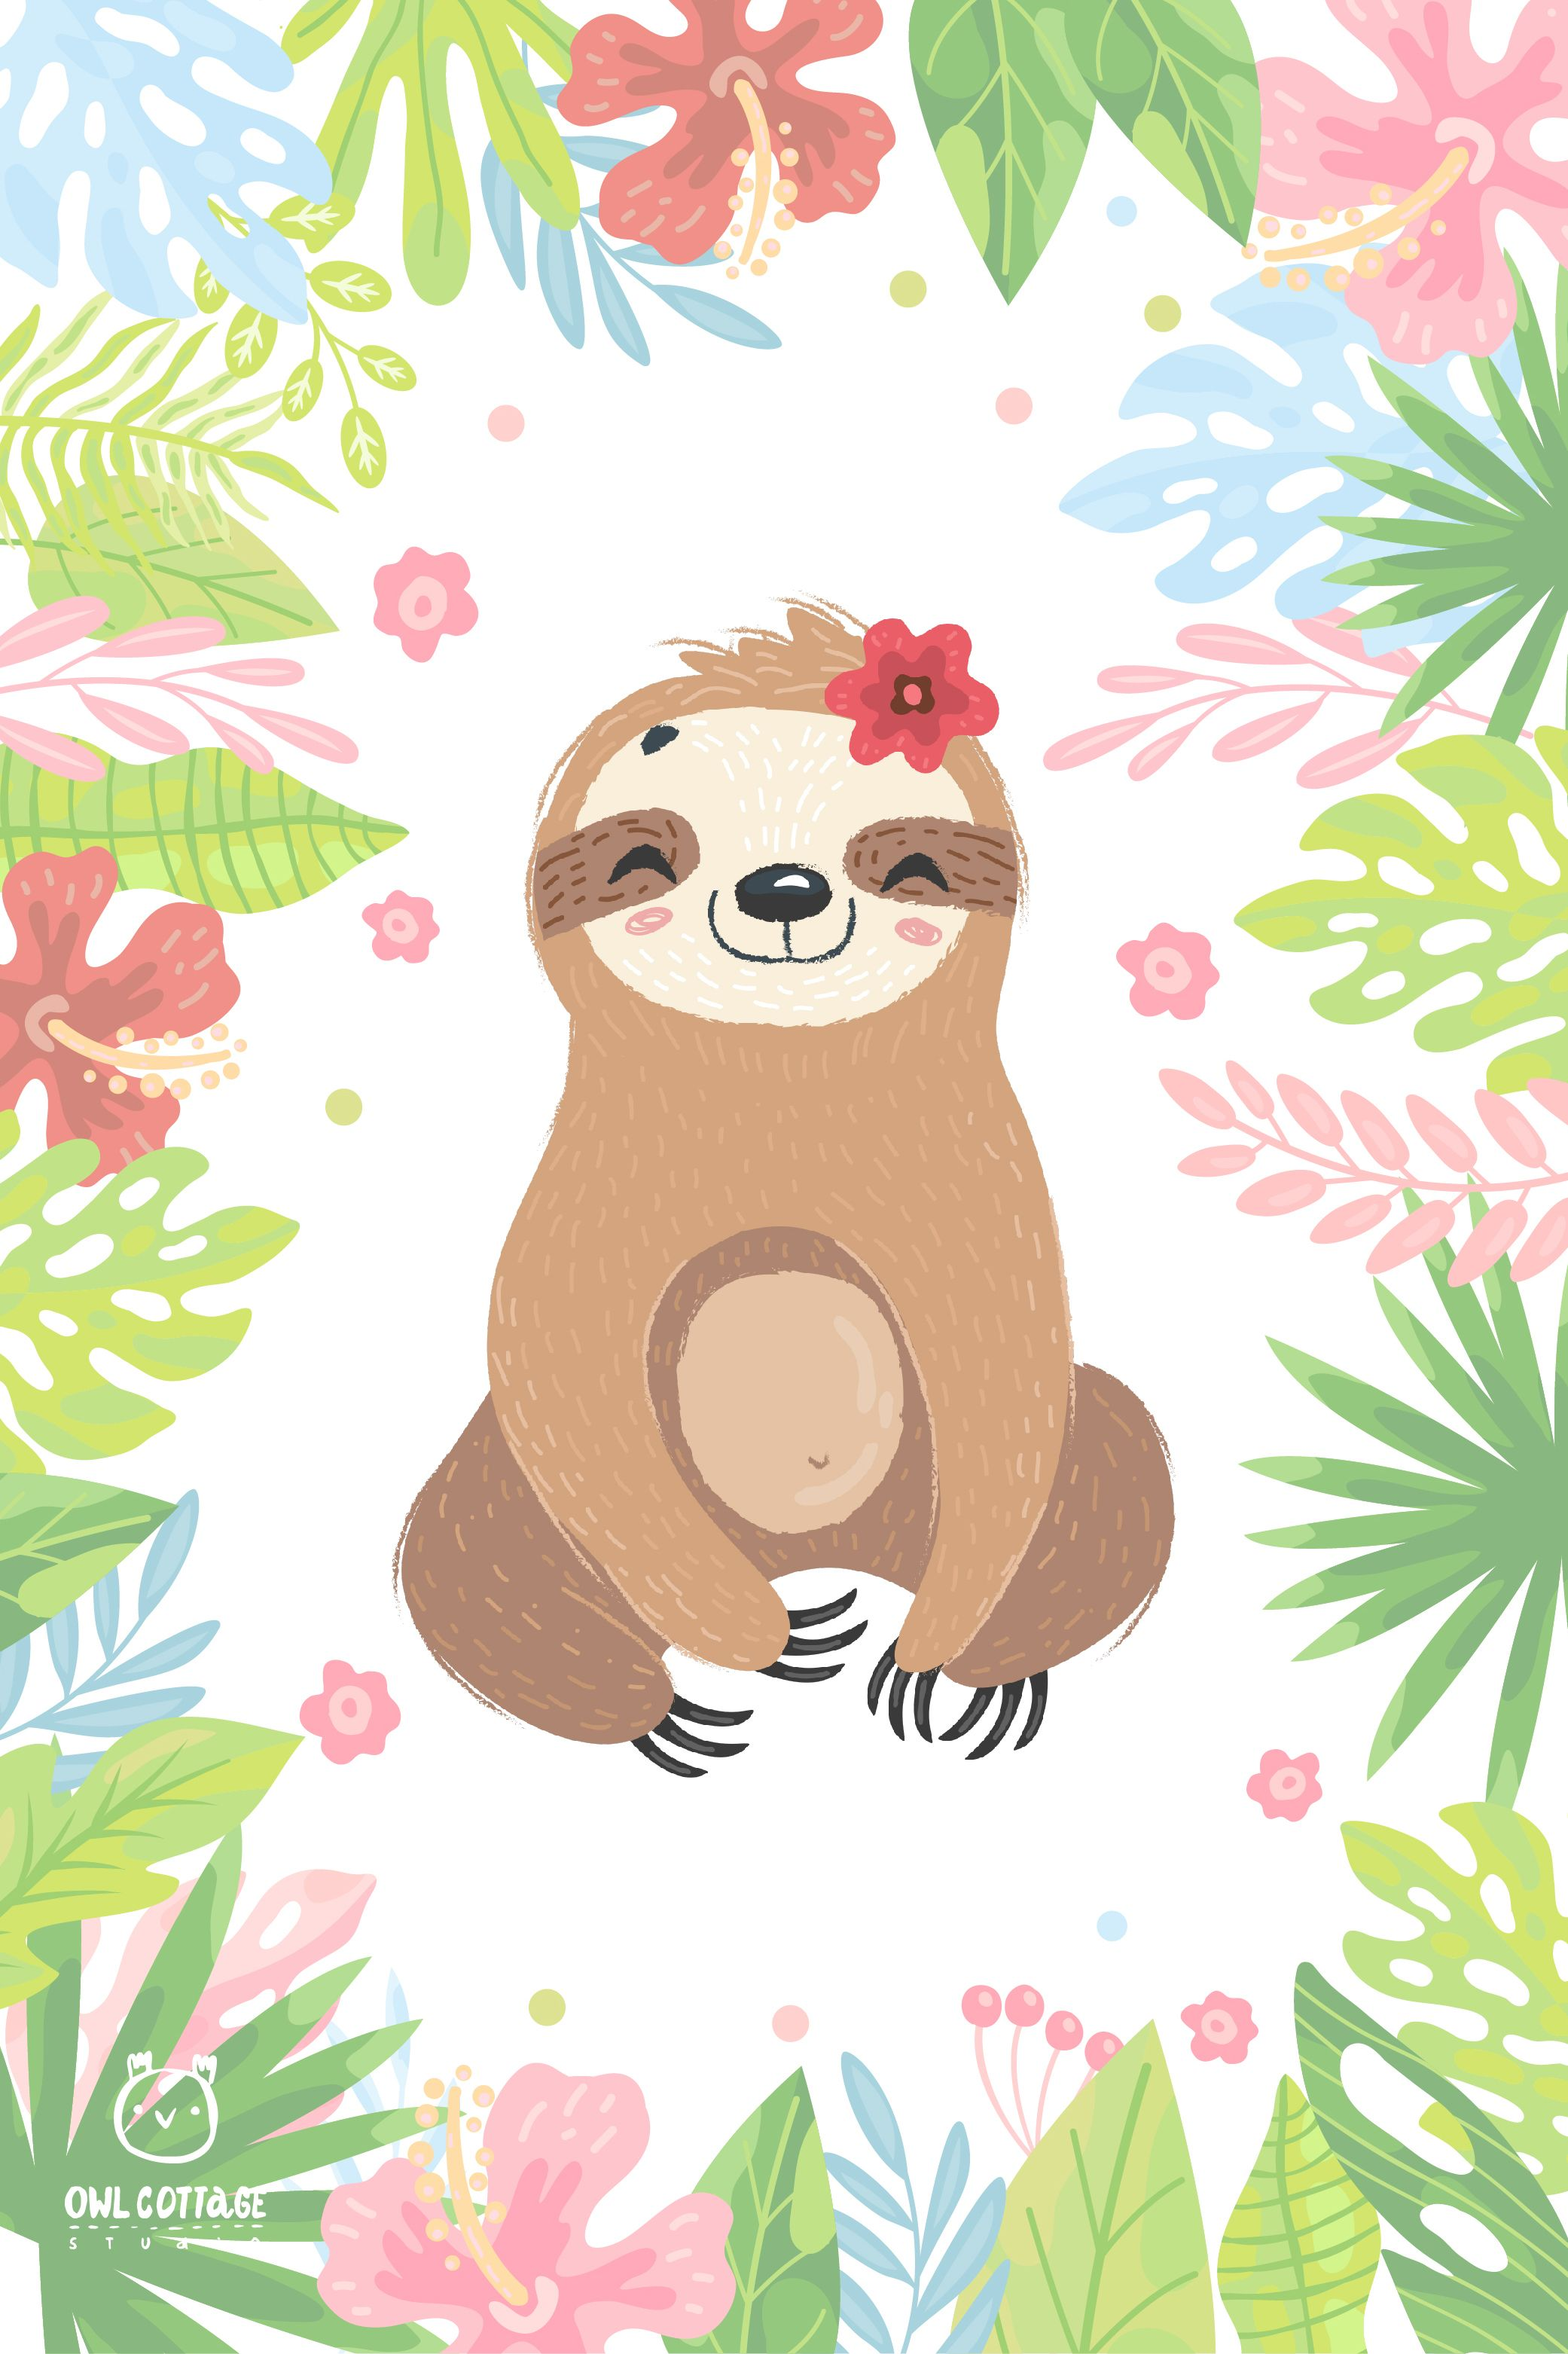 Cute Sloth Clipart Collection Vector And Png Easy Scalable 313643 Illustrations Design Bundles In 2020 Cute Sloth Sloth Art Sloth Cartoon